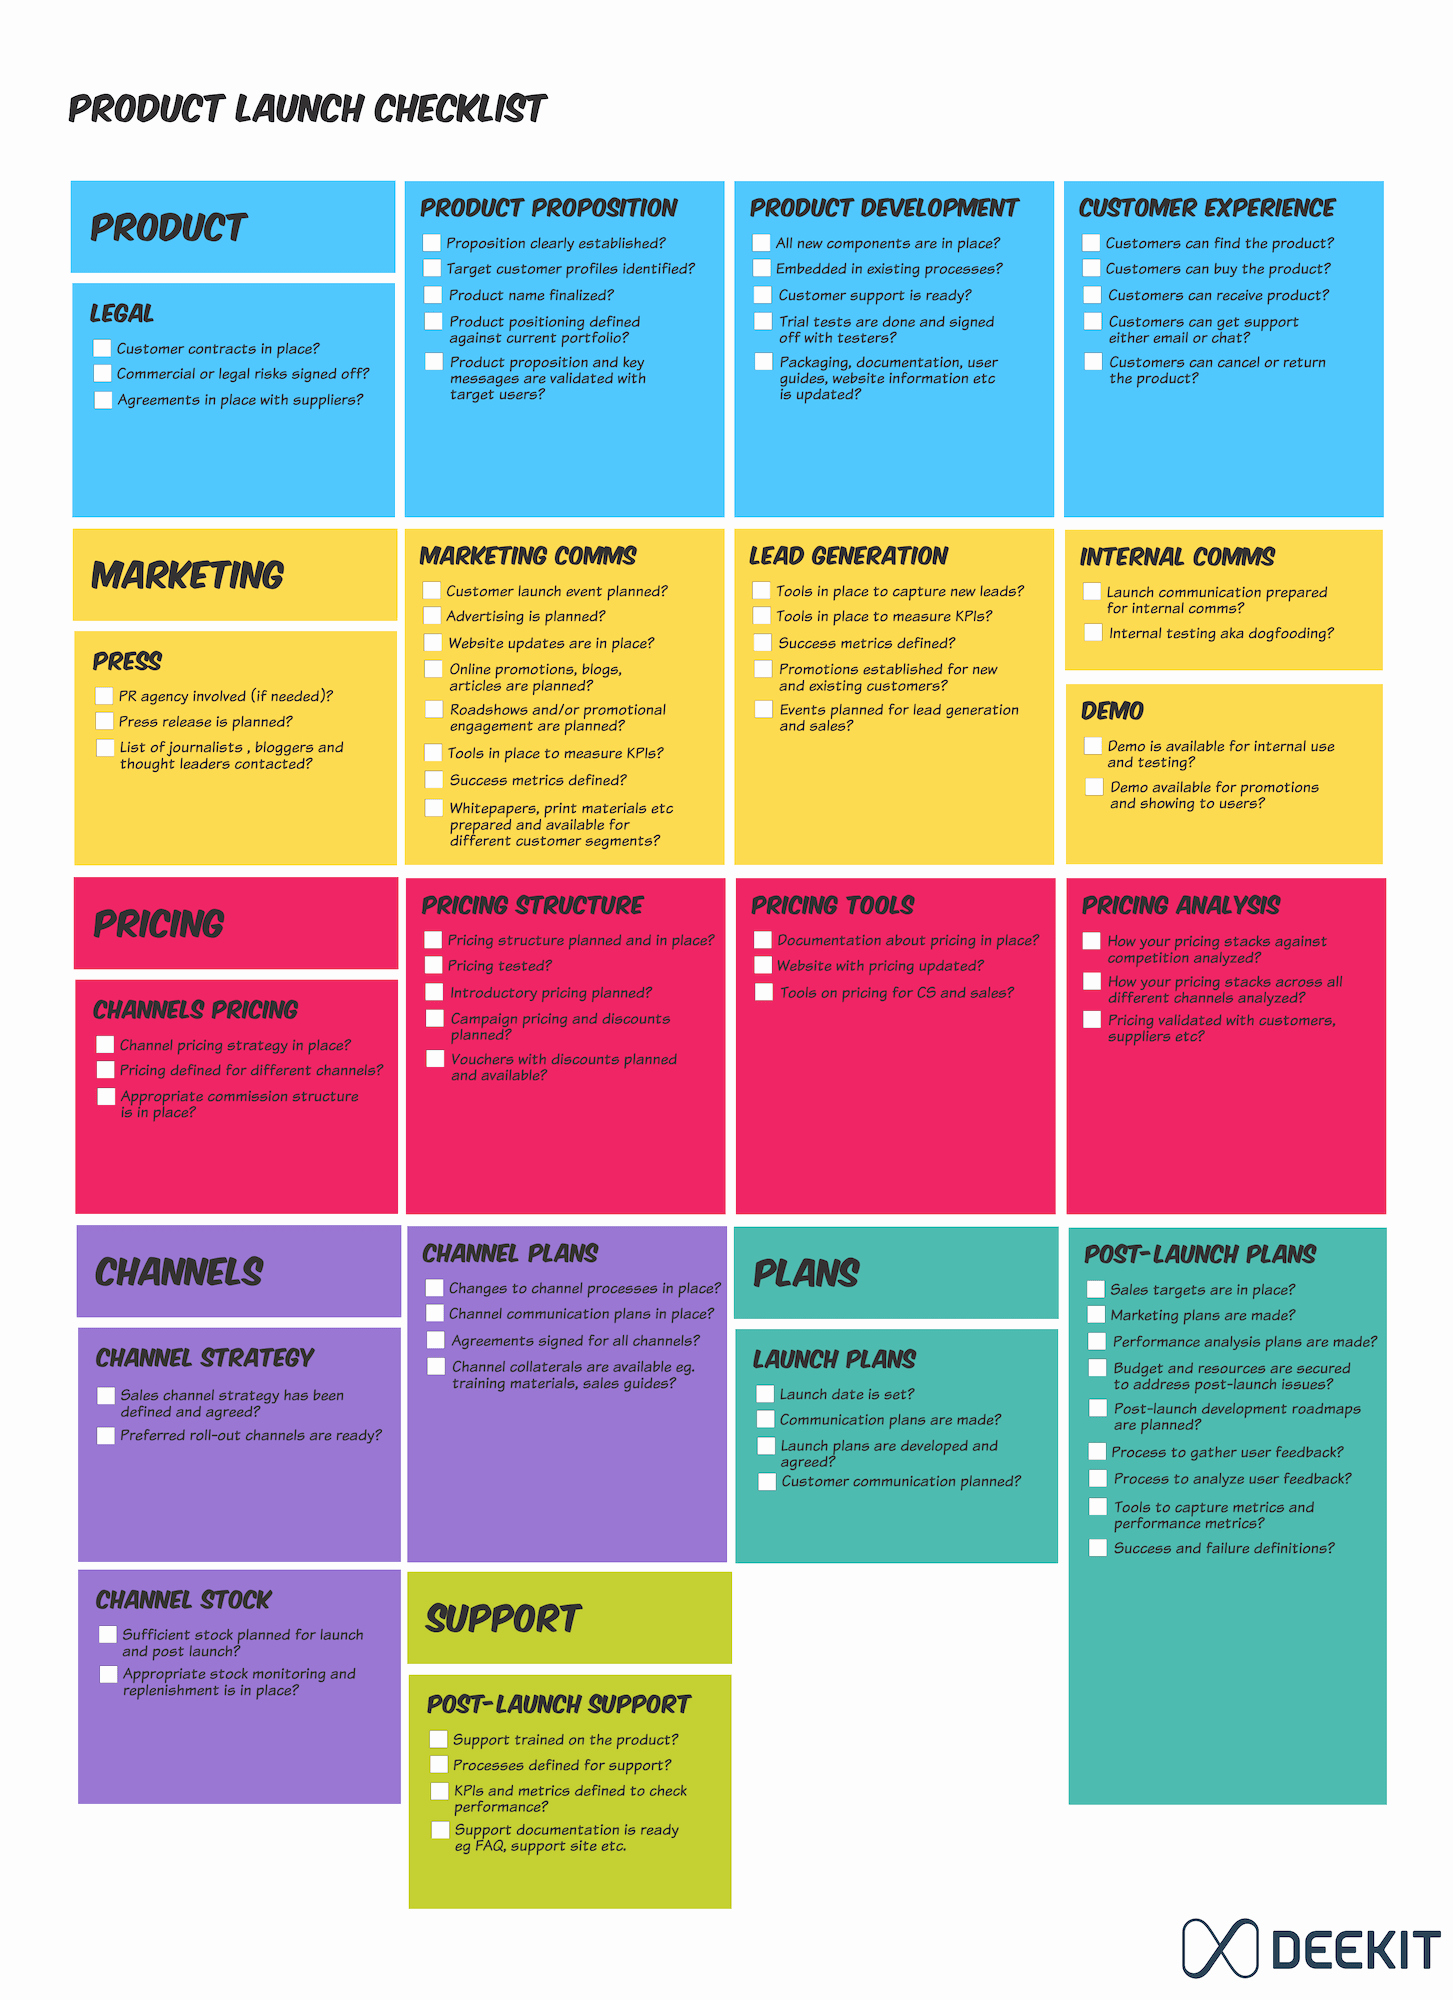 Pharmaceutical Product Launch Plan Template Beautiful Product Launch Checklist — Deekit